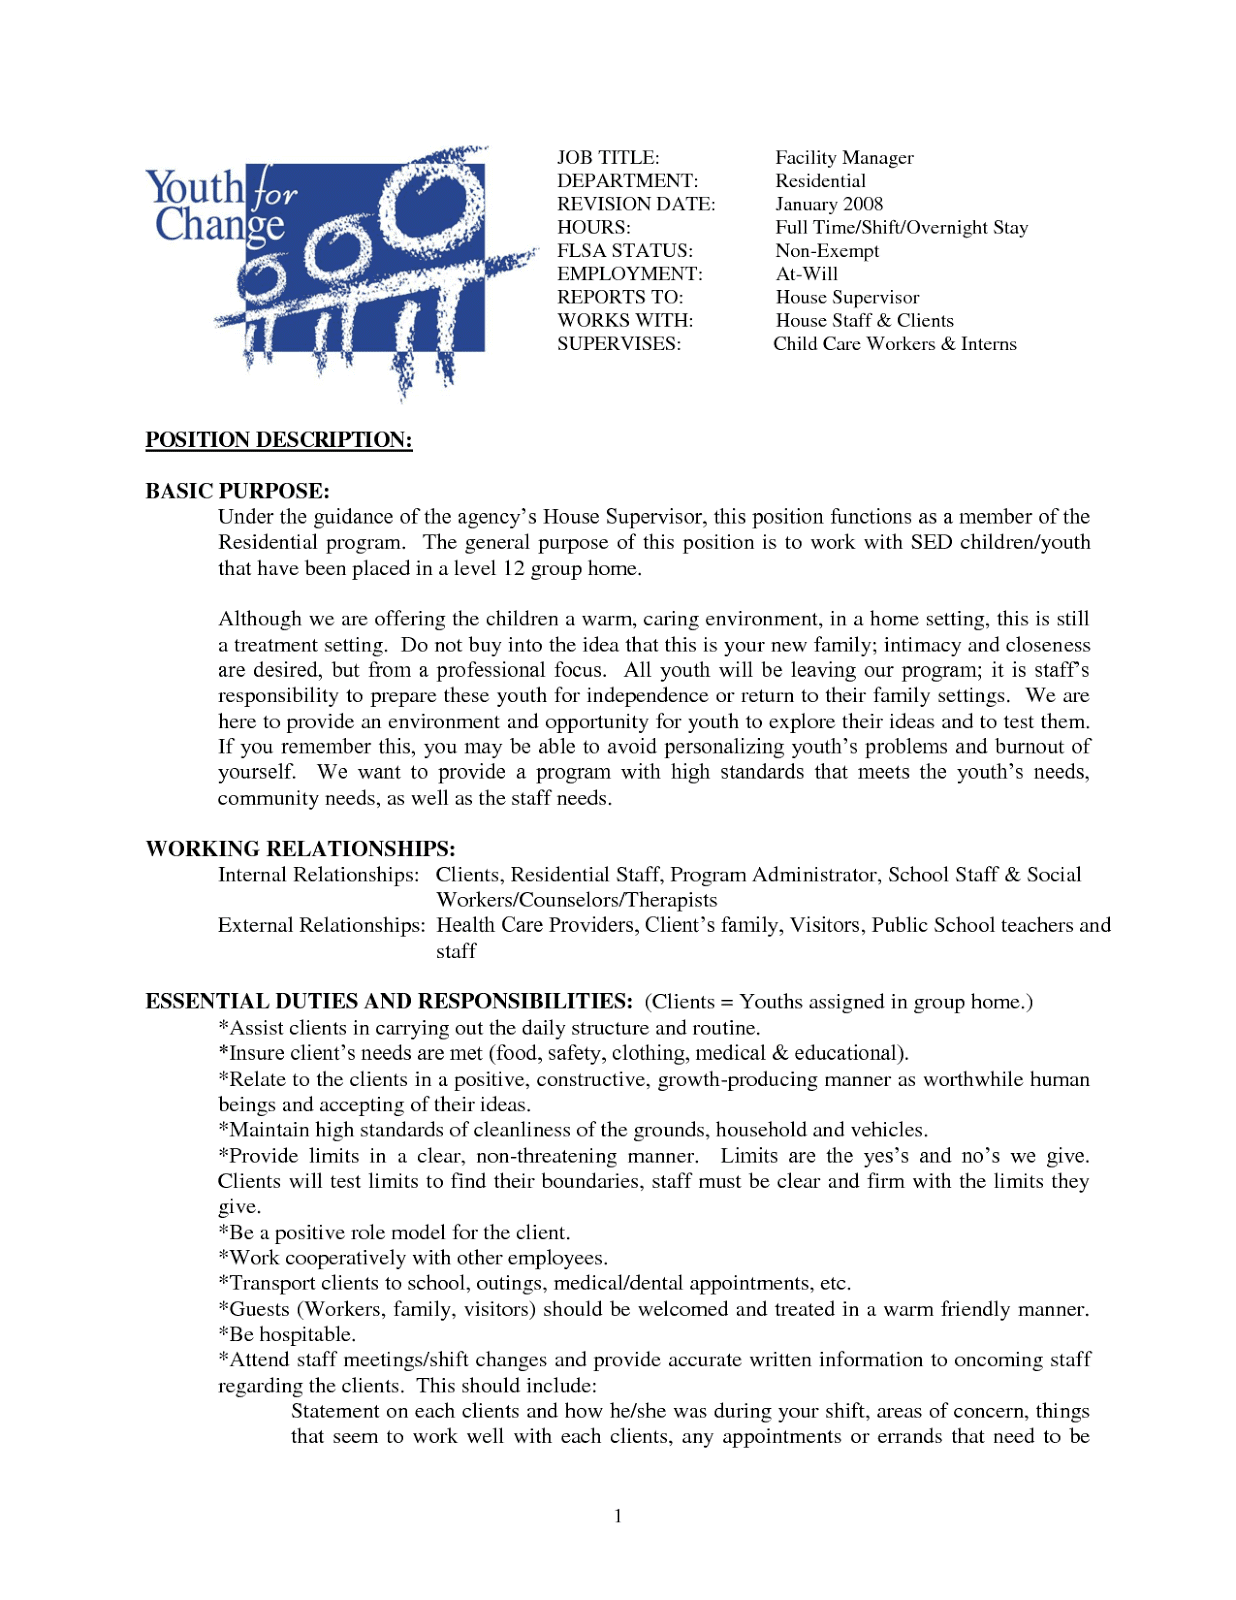 House Cleaning Resume Sample